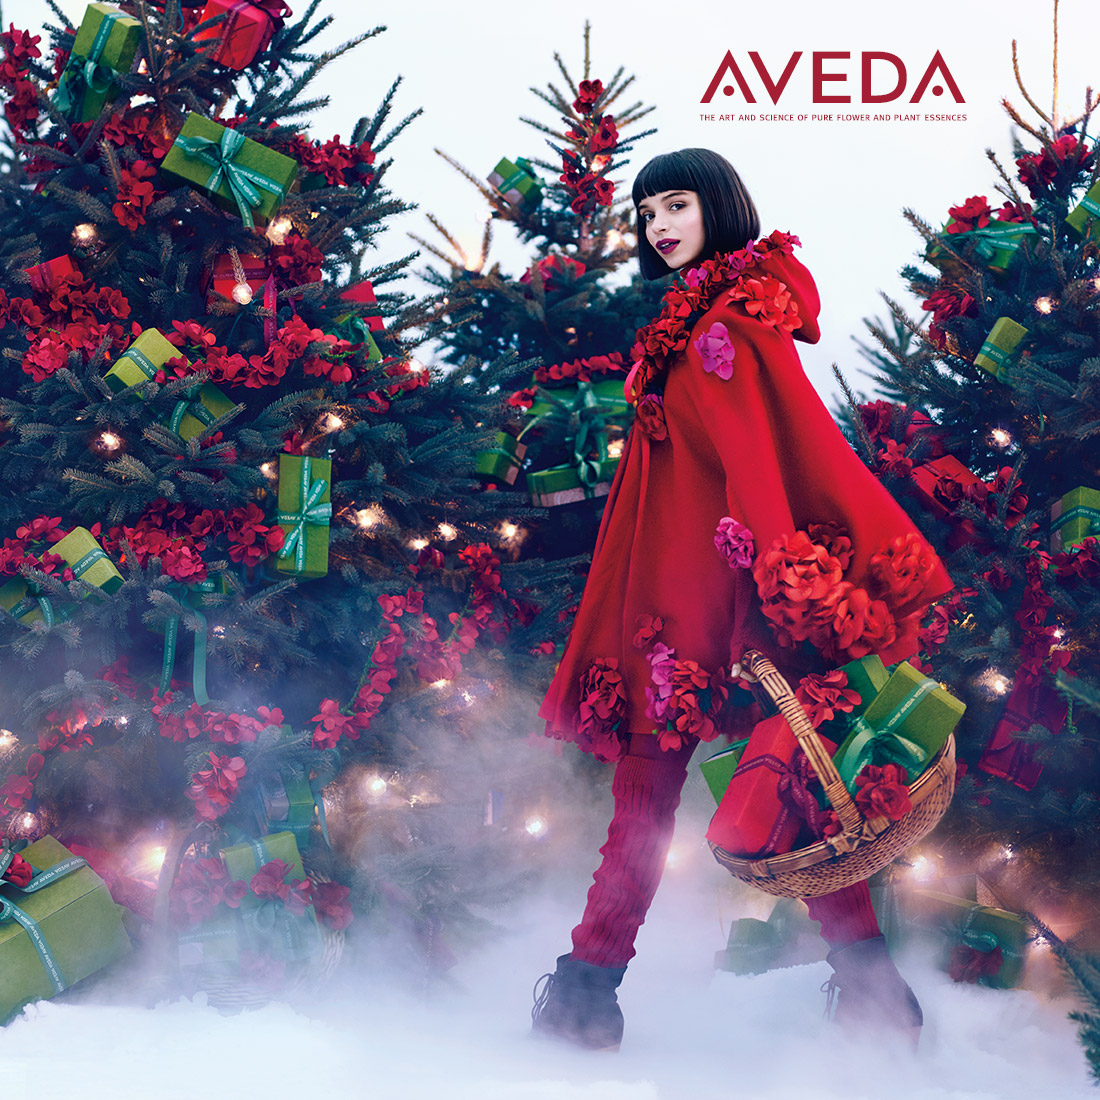 AVEDA POS Video - Brandoutloud